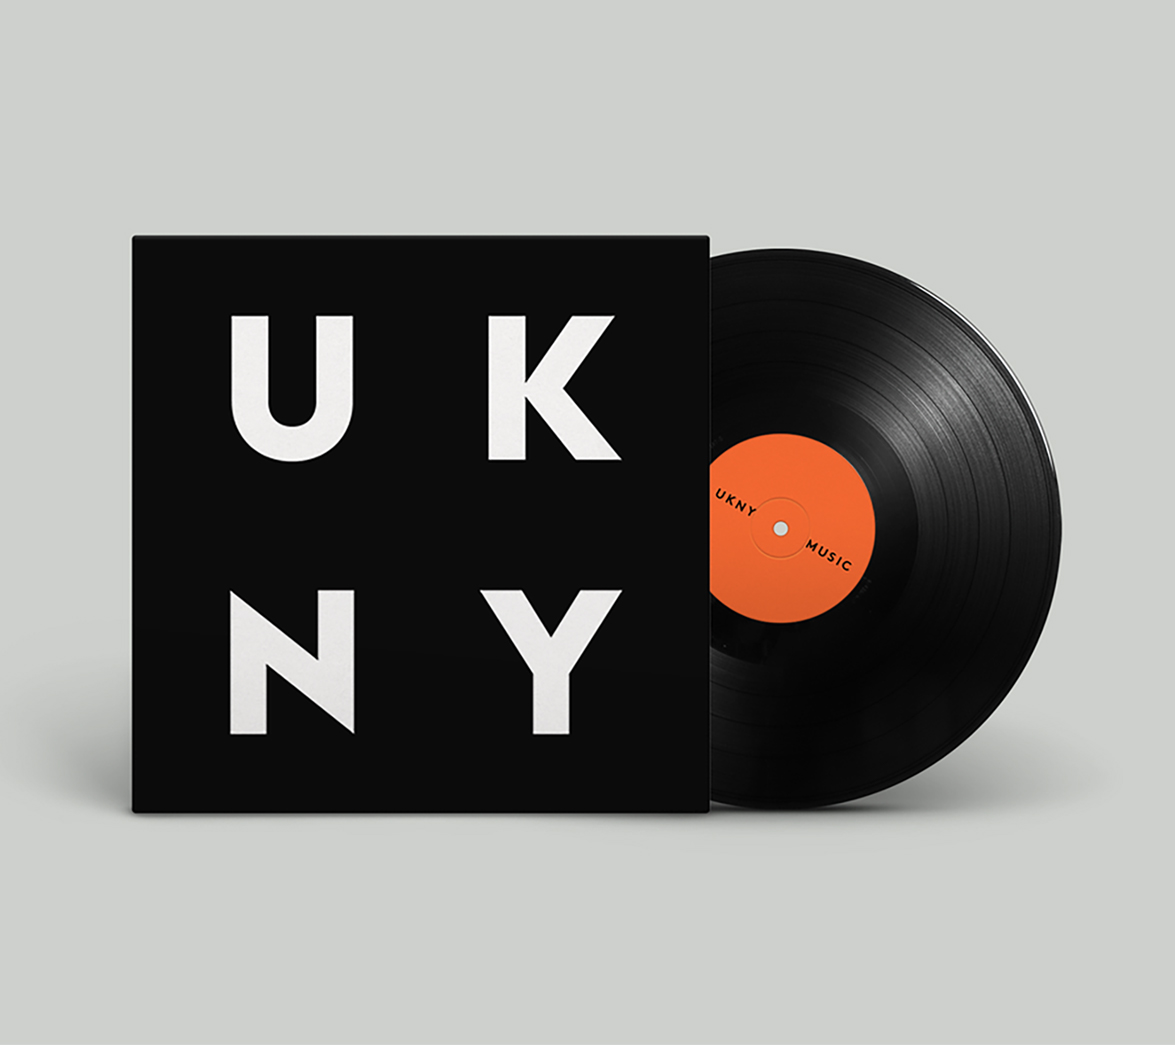 Record cover for entertainment brand UKNY, designed by White Bear Studio